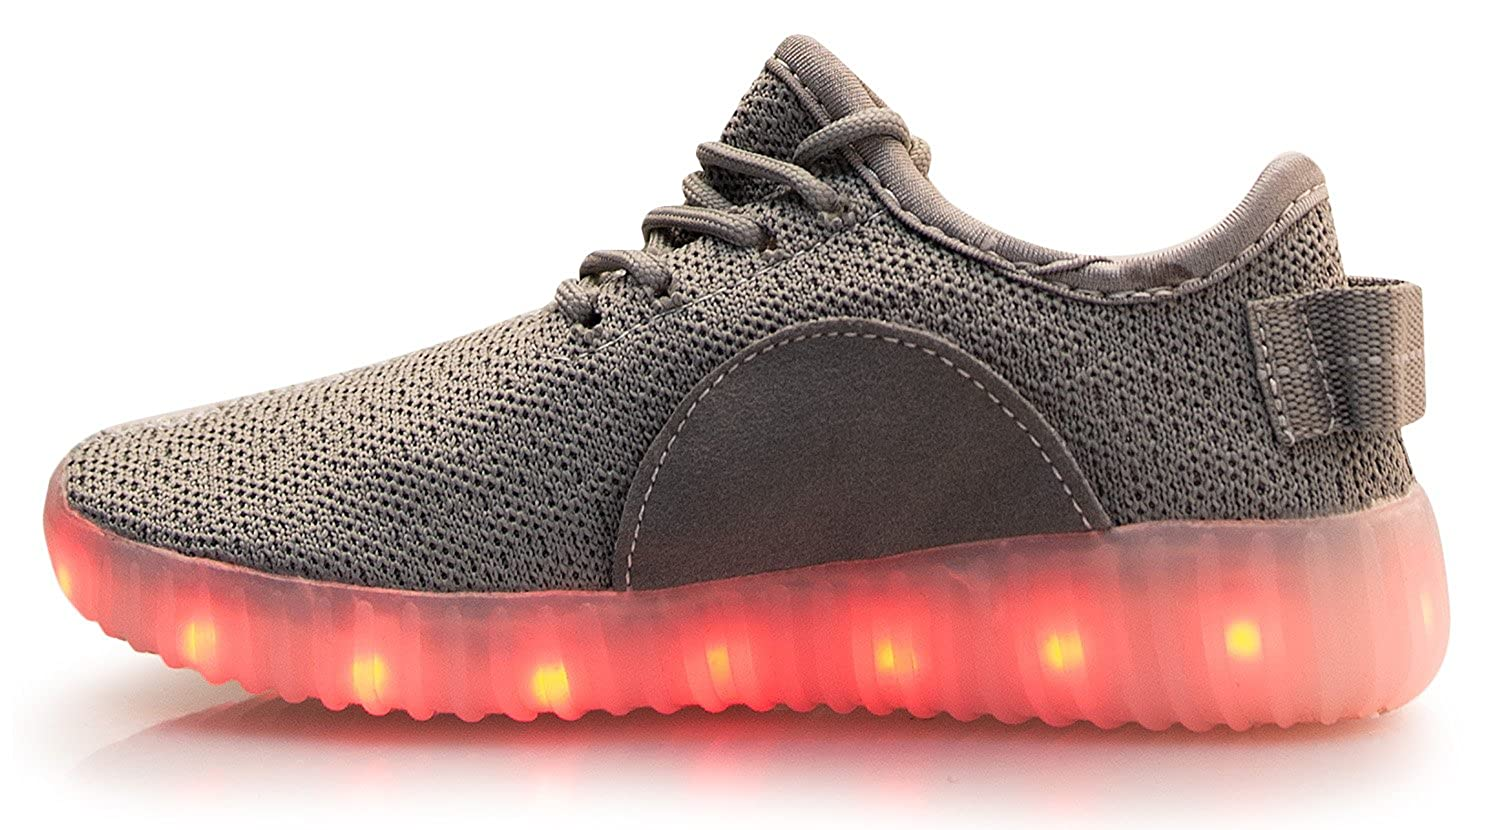 OLIVIA K Kids Girls Boys Casual Led Light Up Shoes 7 Colors 4 Mode Flashing Rechargeable Sports Sneakers